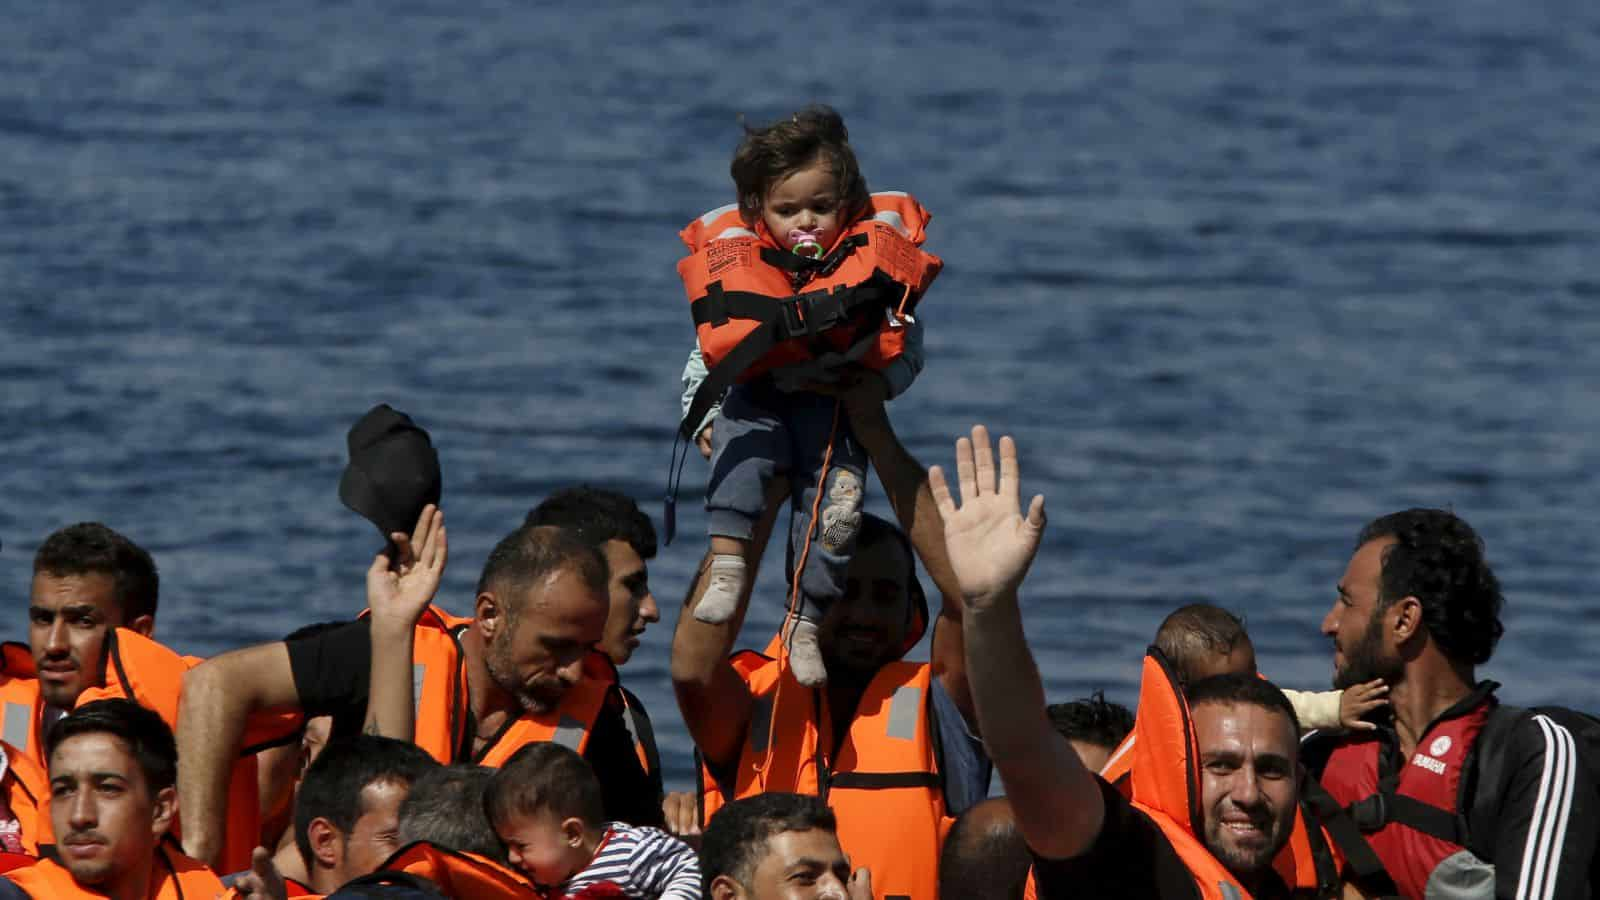 29 Countries Accepting Refugees From Syria And The Mideast